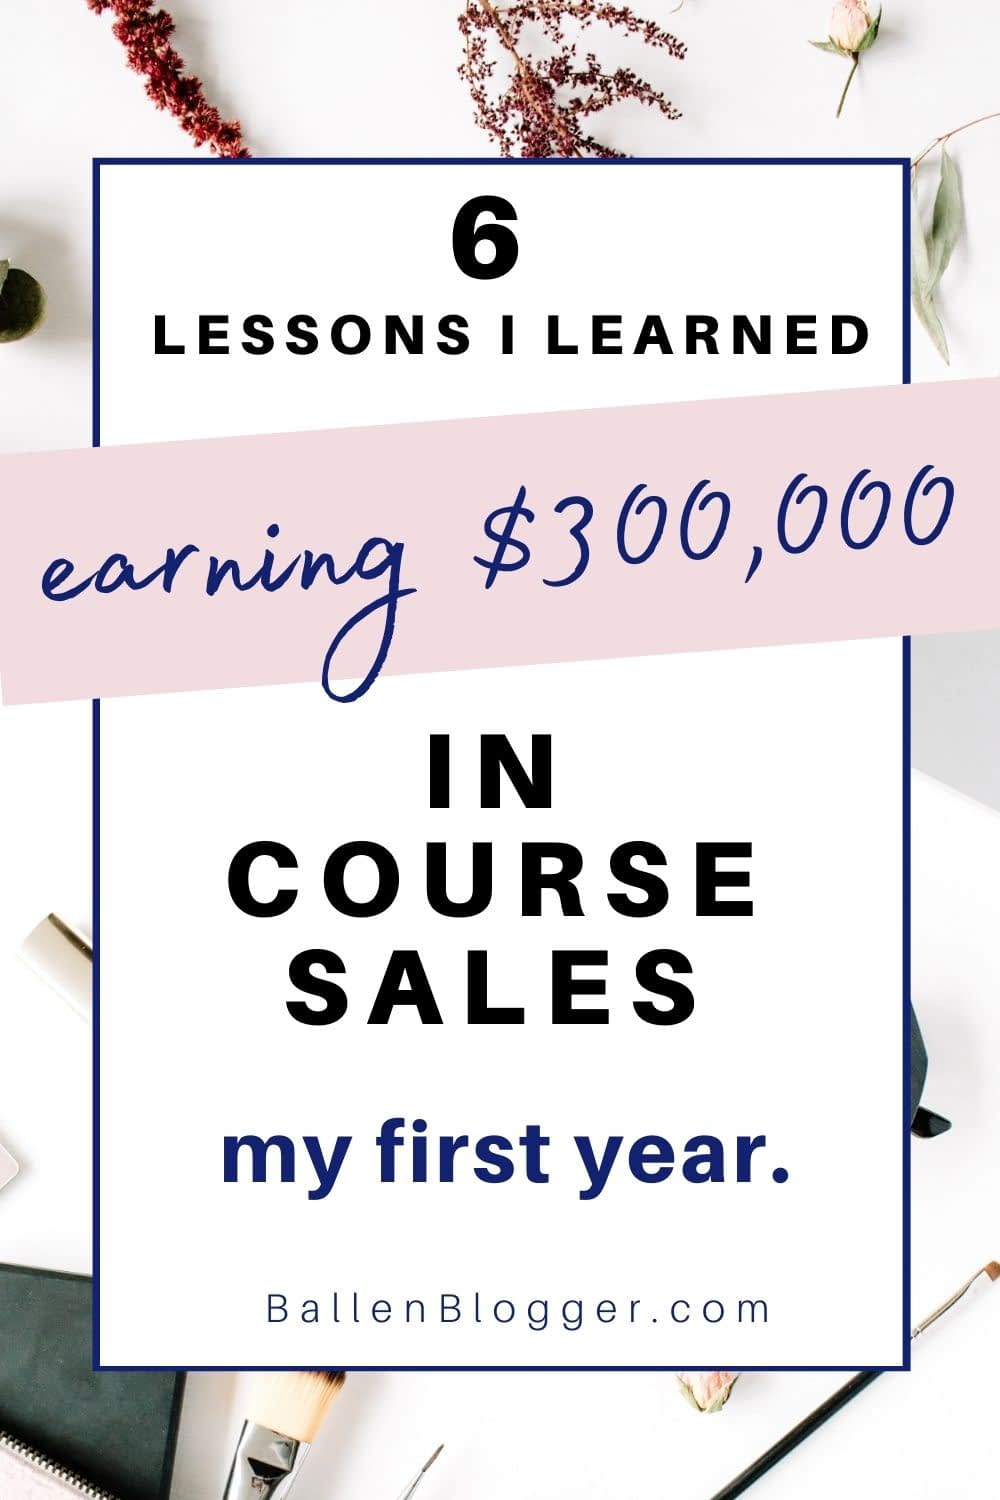 I never set out to create and sell courses. It happened organically. As the online courses began to grow, I was thrilled to hit the $300,000 in sales number my first year. In this article, I'll share my personal experiences, what worked for me (and didn't), and what I learned on the journey.